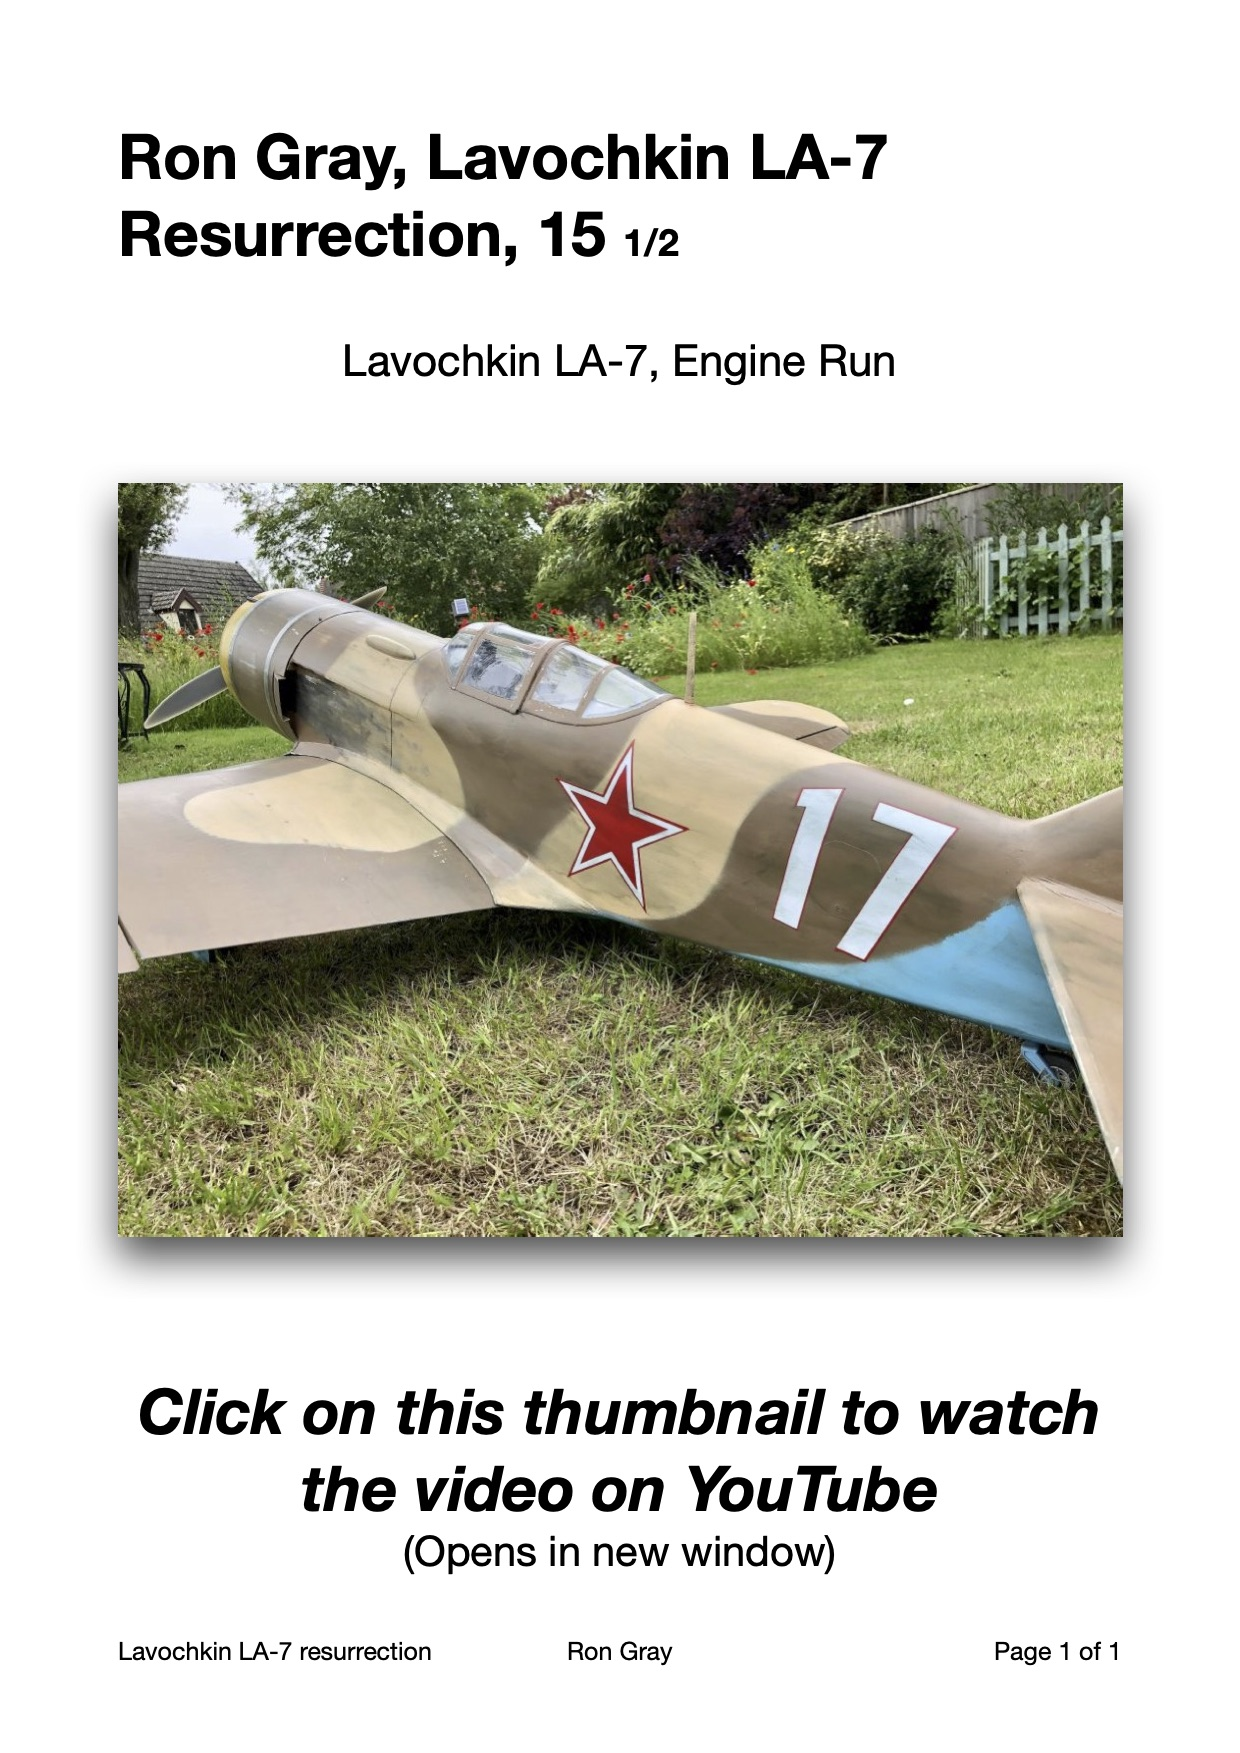 Ron Gray, Lavochkin LA-7, the resurrection 15 1/2, on YouTube